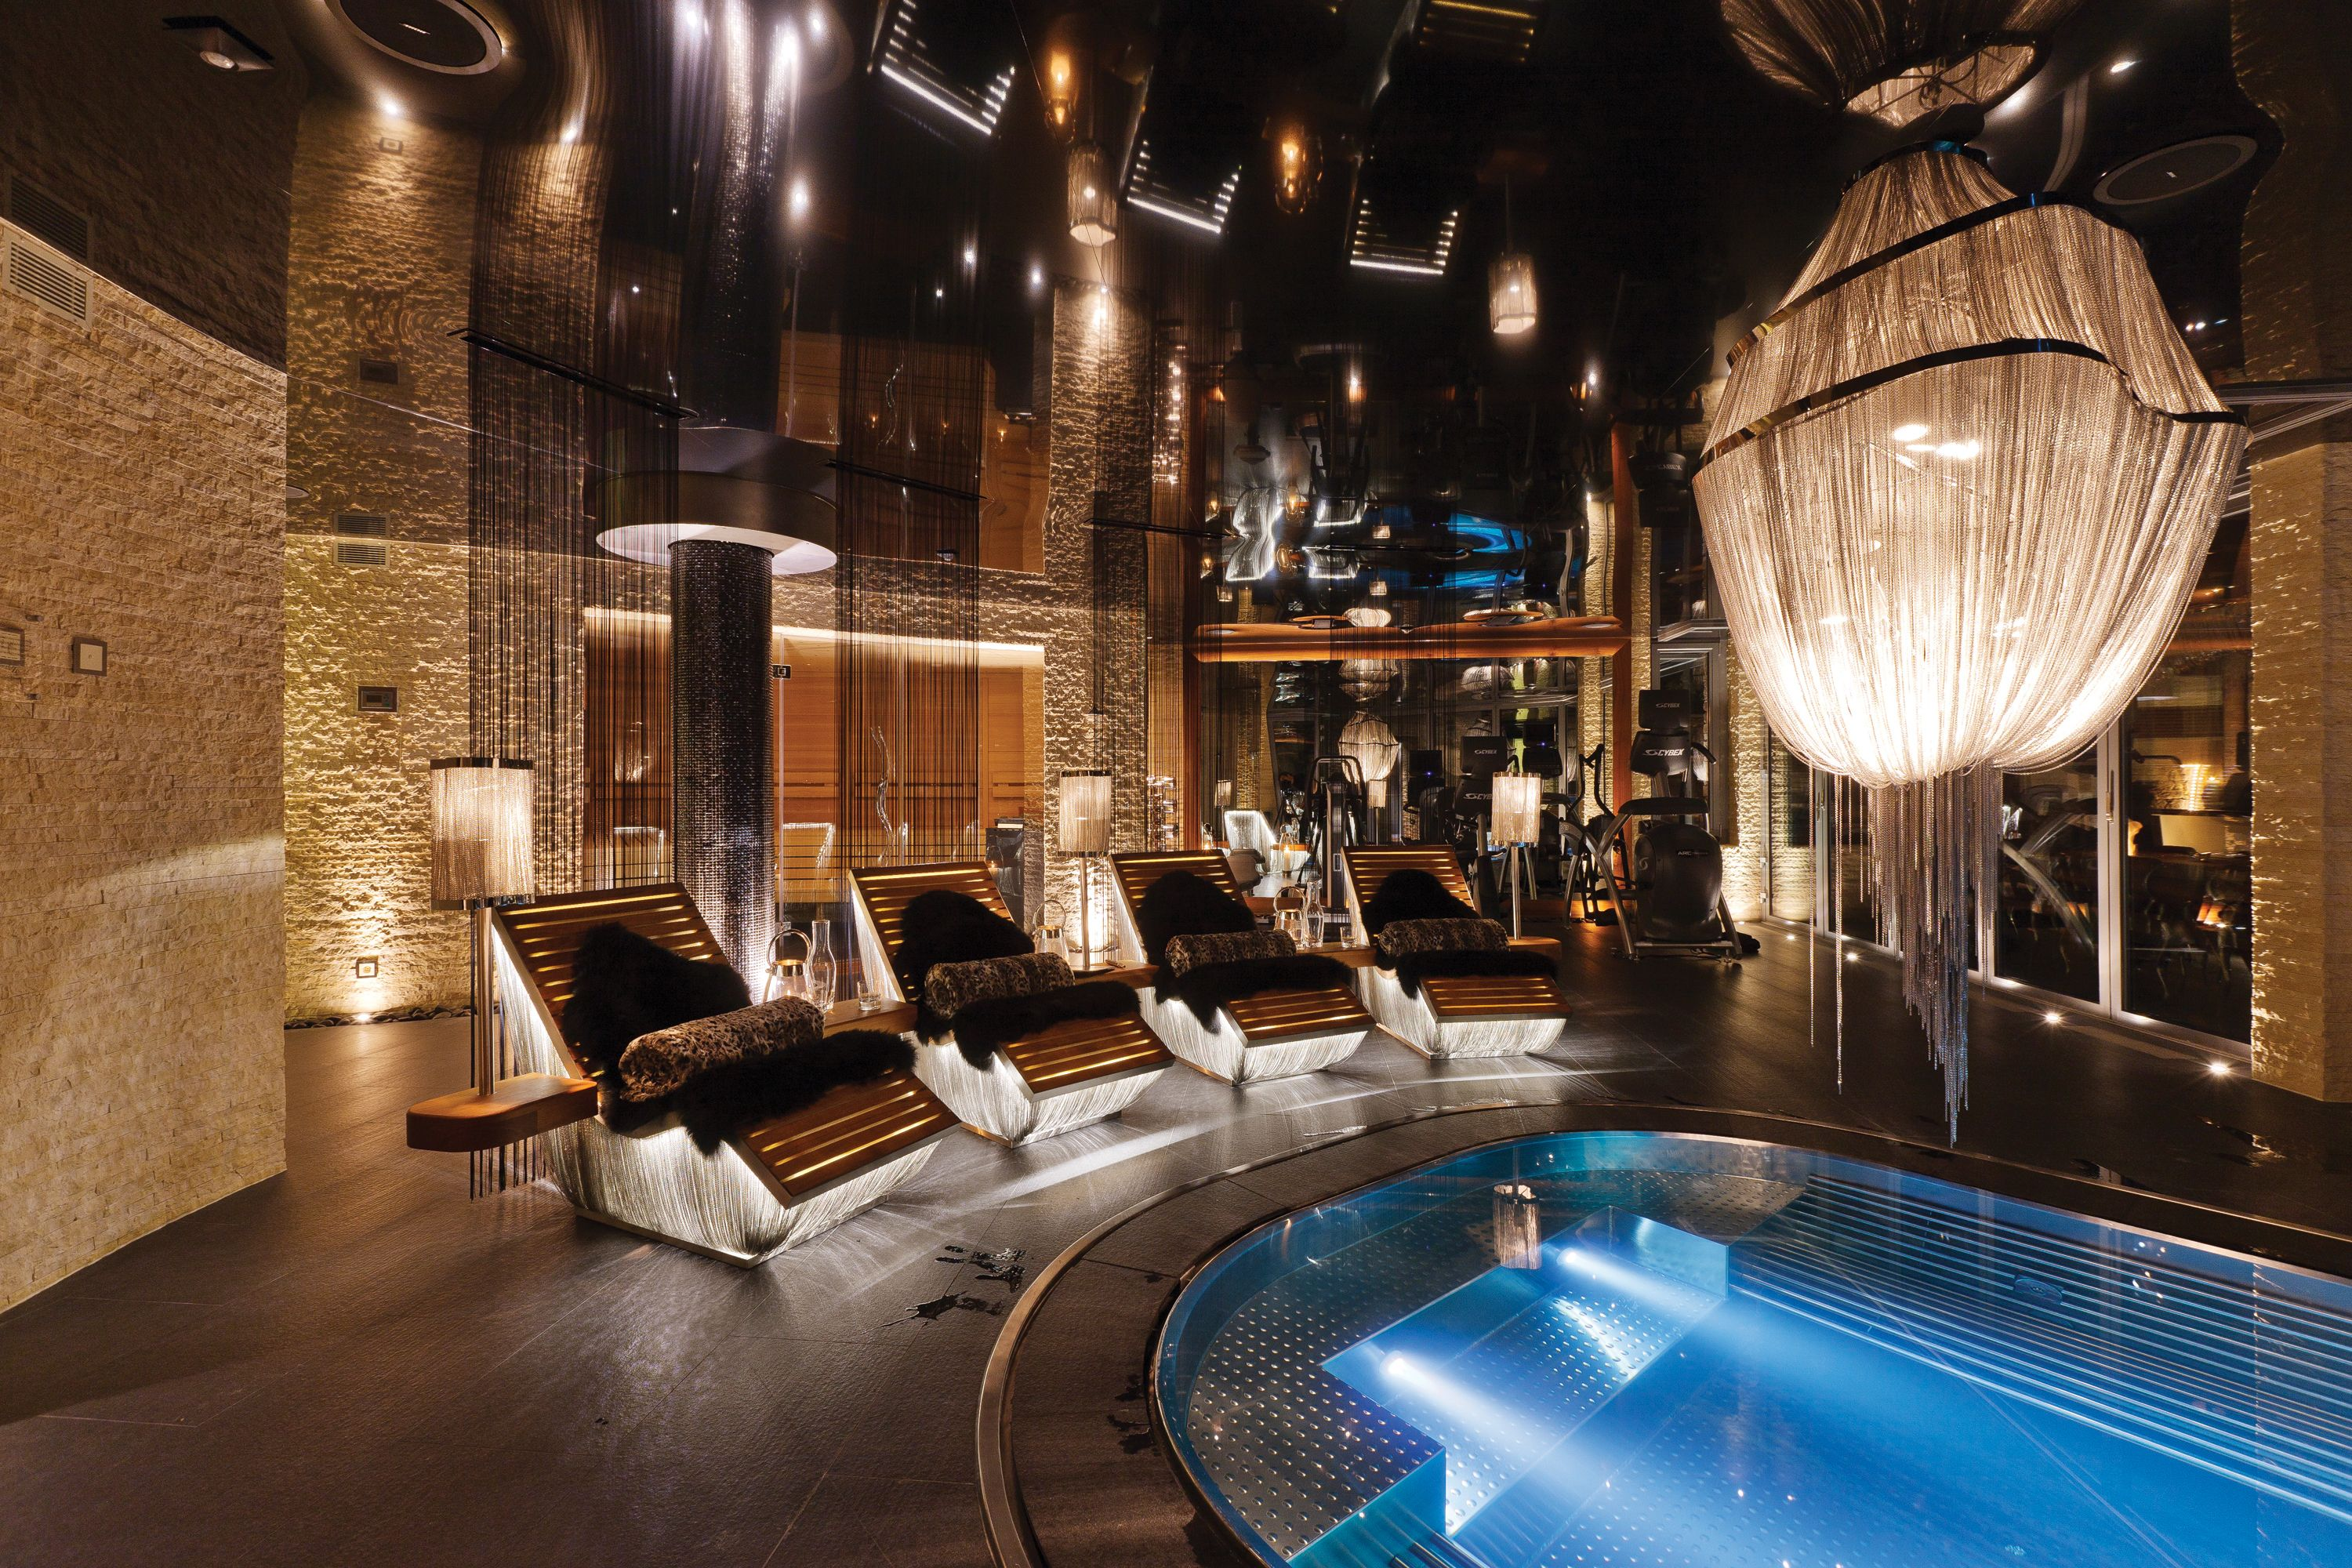 The Jacuzzi And Relaxation Area At Chalet Zermatt Peak In The